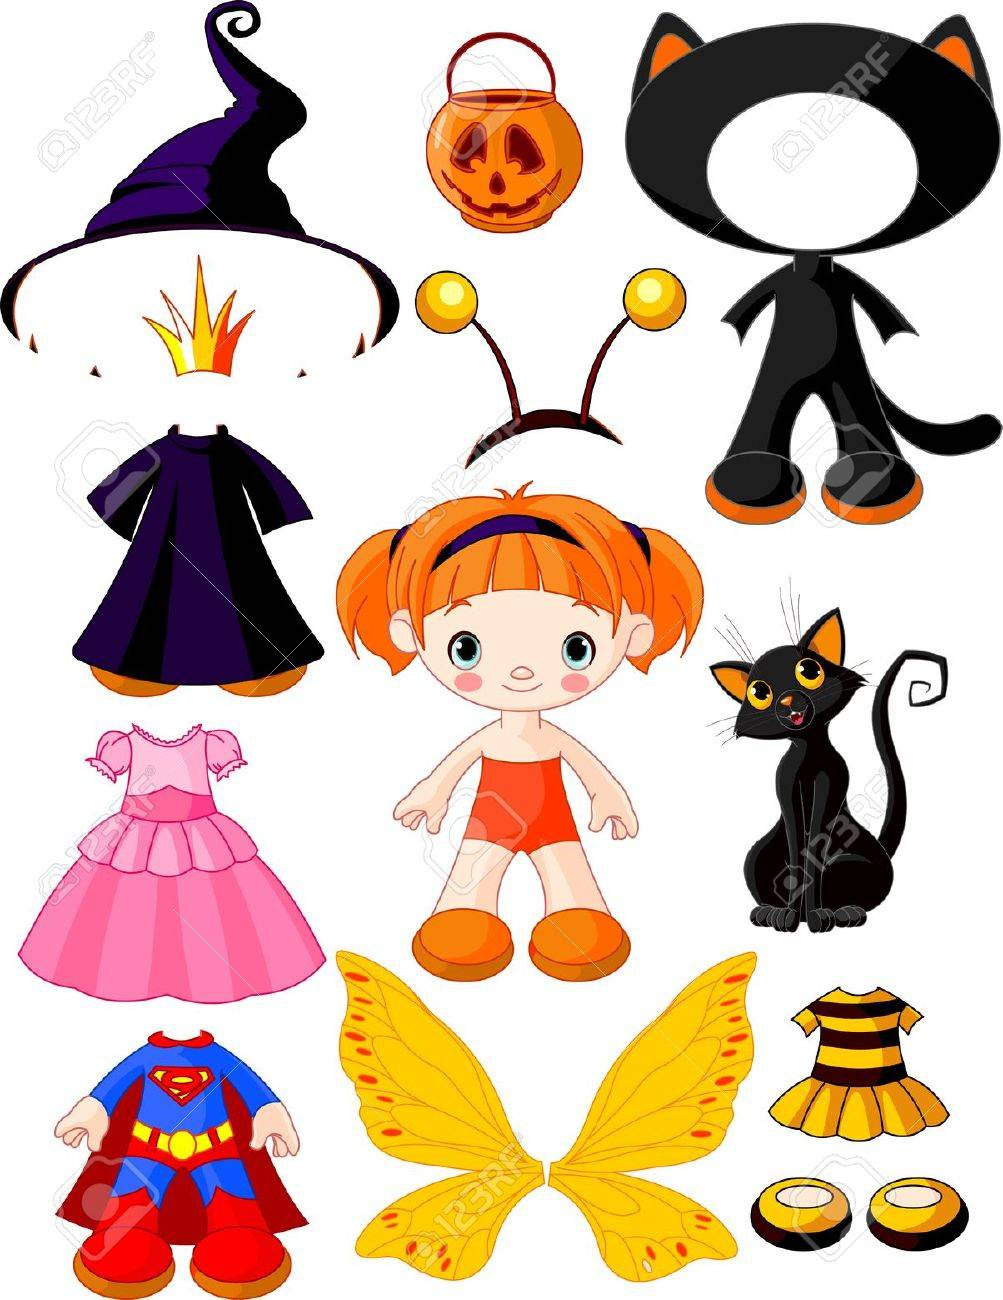 Paper Doll With Three Dresses For Halloween Party Royalty Free ...